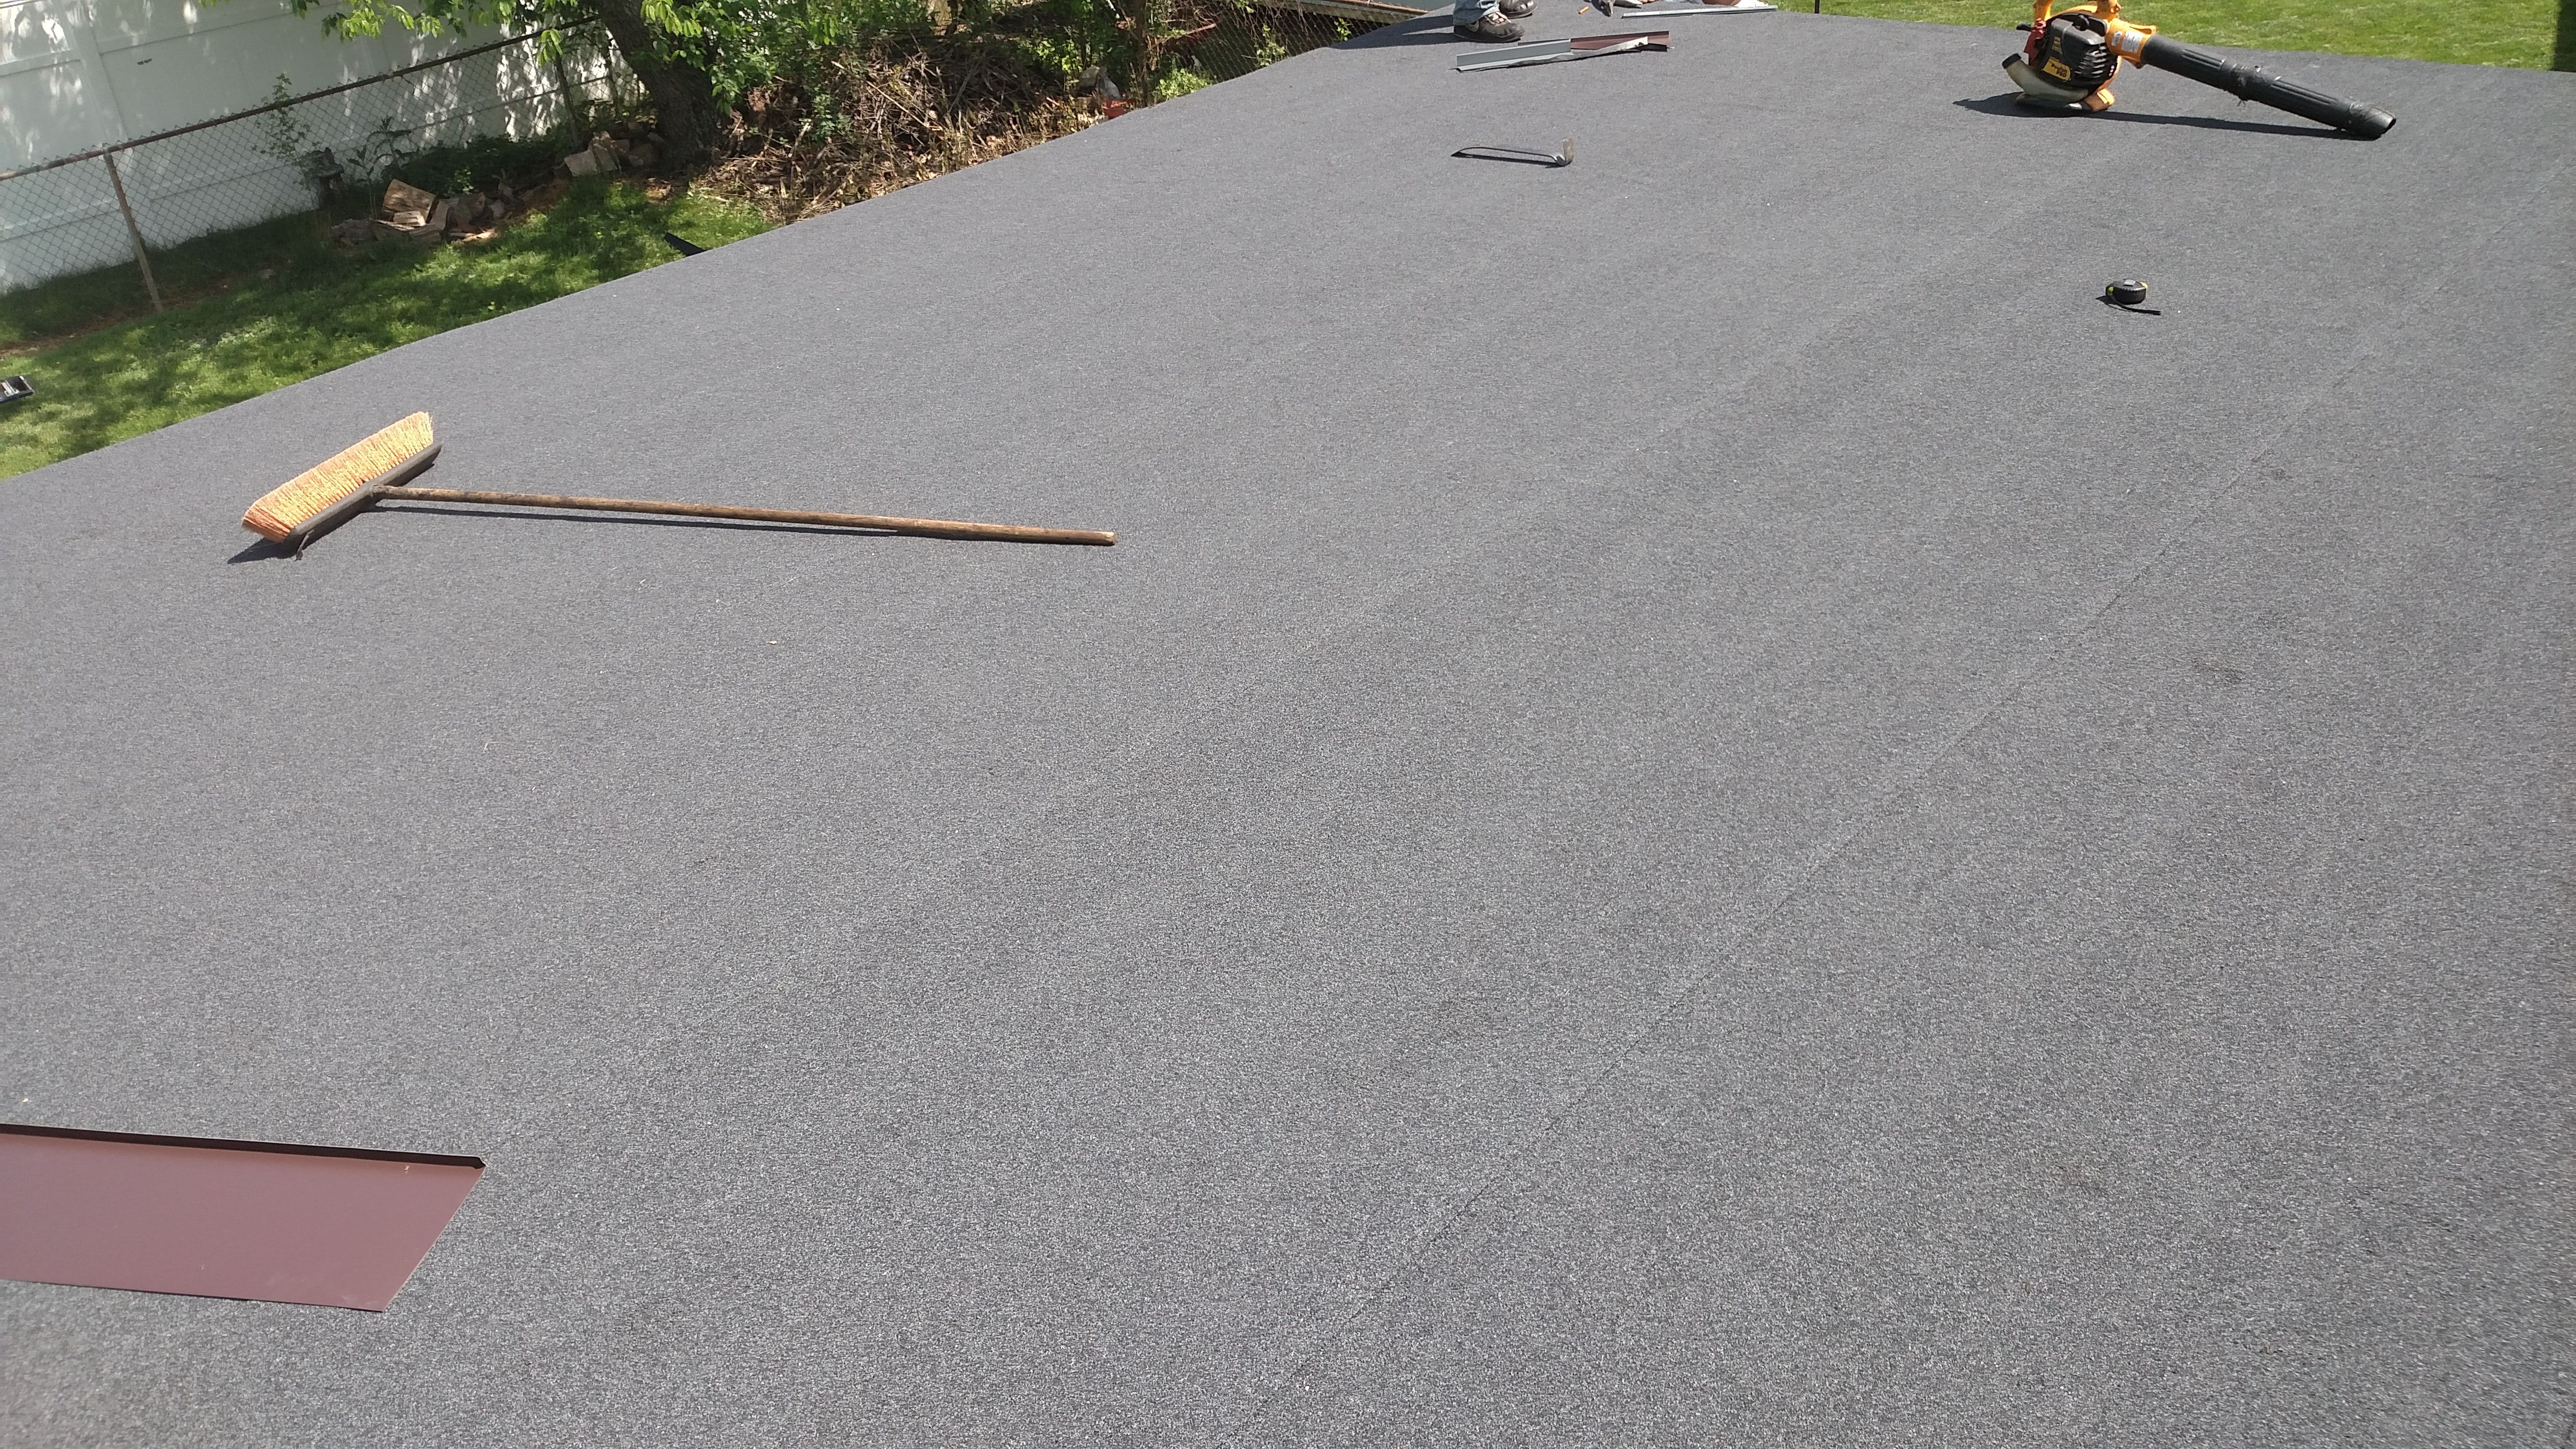 Newly Installed Asphalt Rolled Roofing For A Customer In Kettering Matched The Shingles Perfectly Dependabilityfirst Dcand Roll Roofing Roofing Shack Ideas